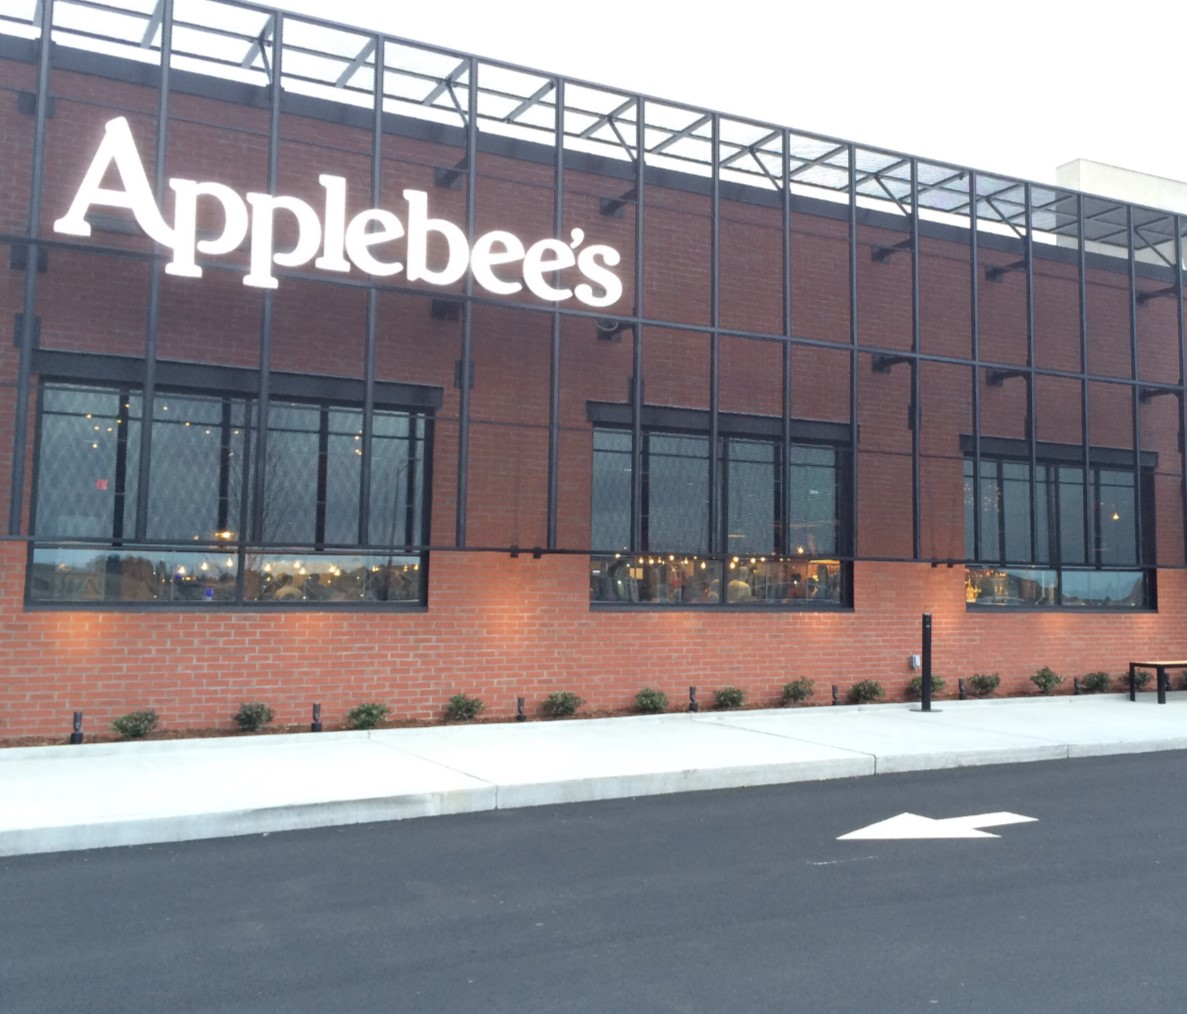 Applebee_s_Architectural_Skeleton_wall_w_illuminated_acrylic_formed_letters.jpg